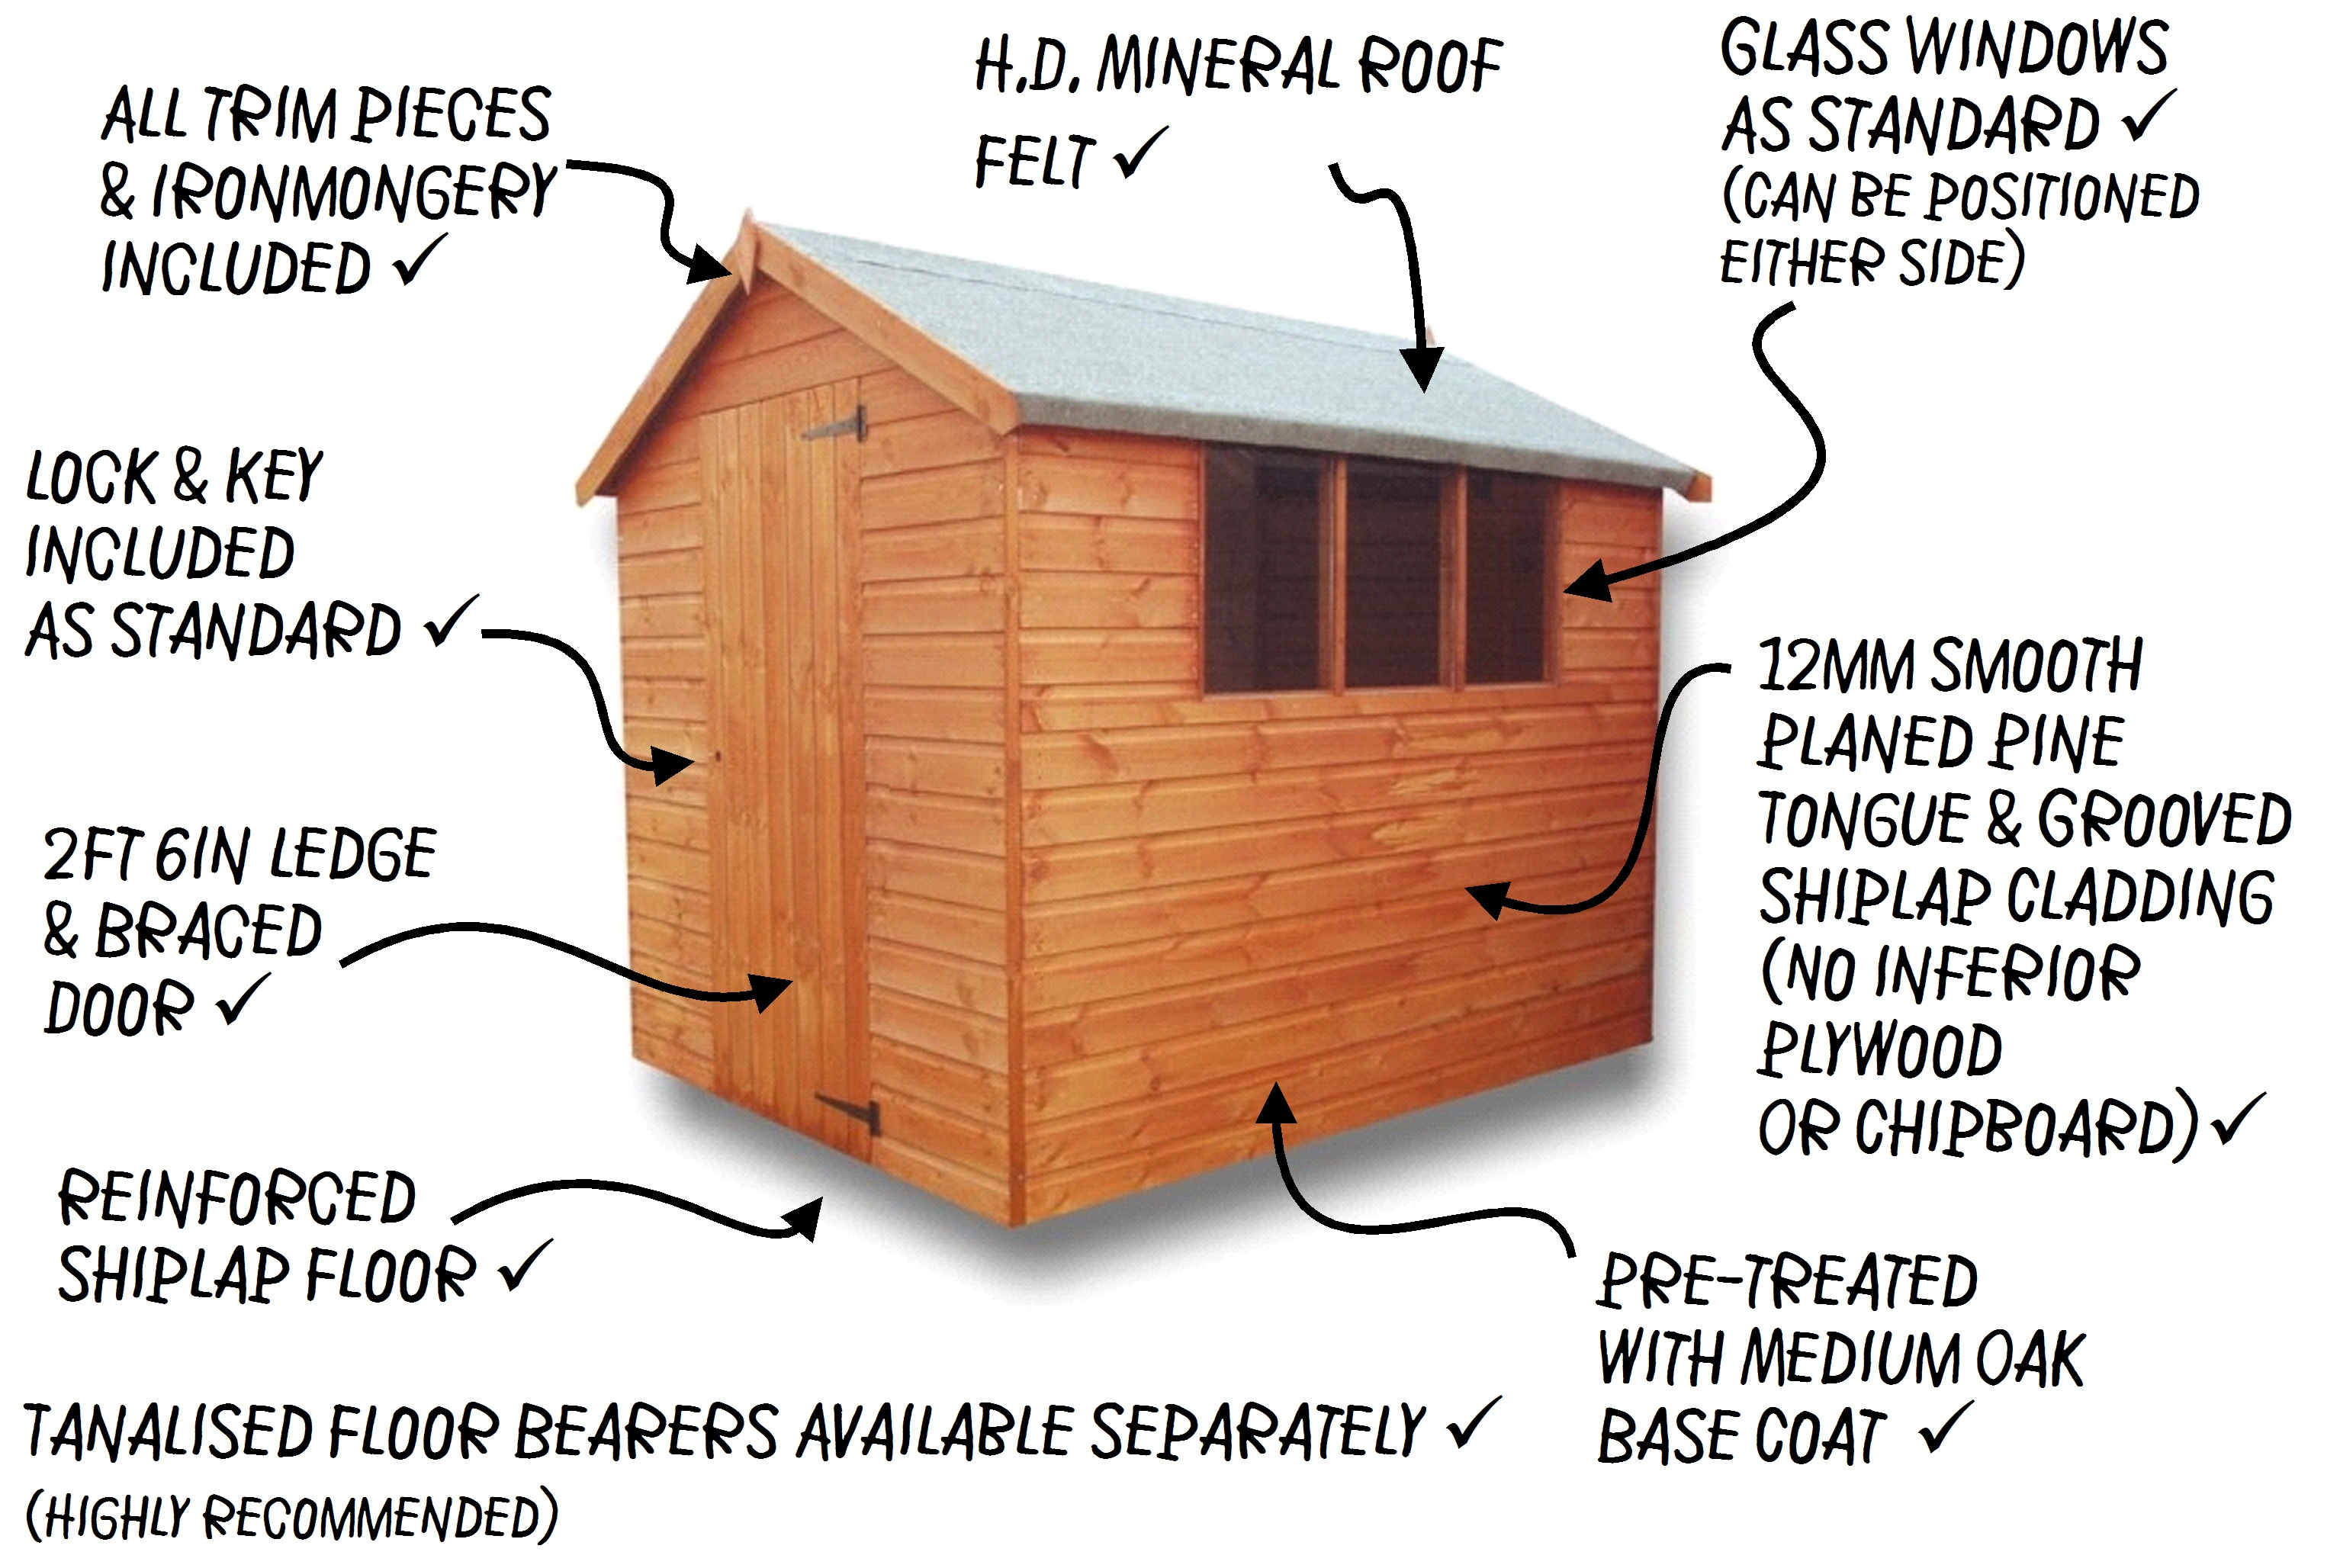 Shed Features